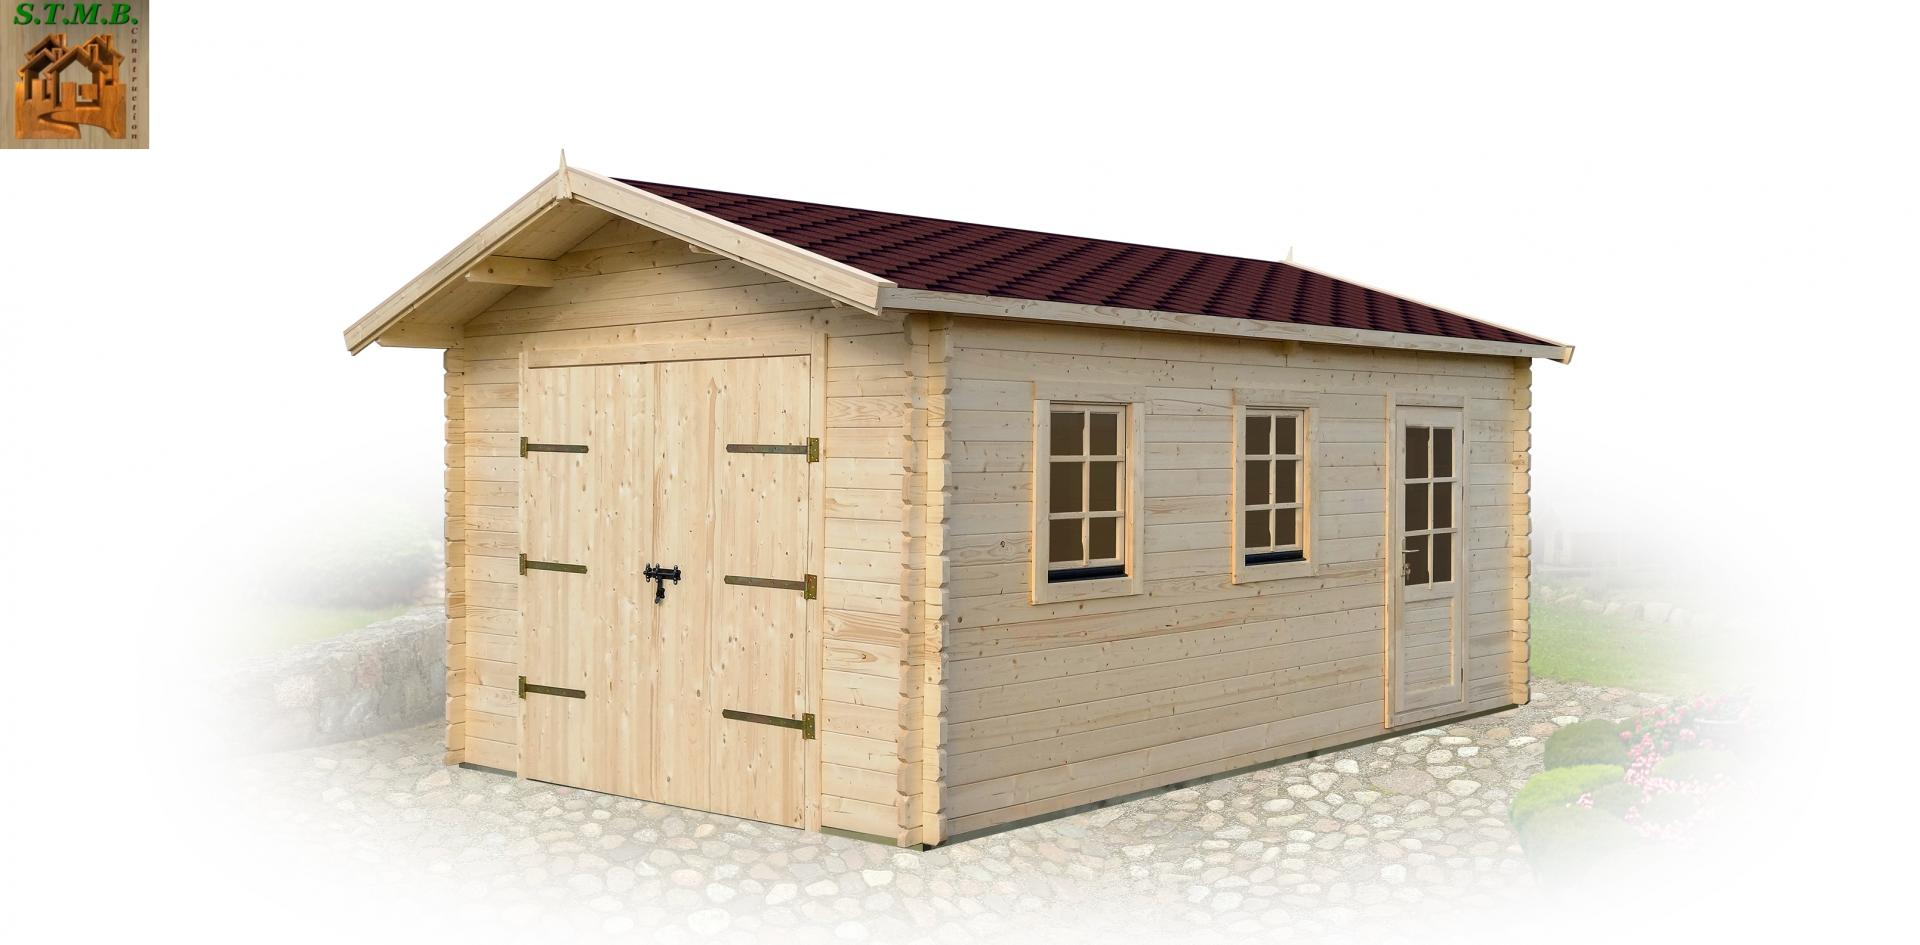 Garage en bois pas cher stmb construction chalets for Garage en bois en solde